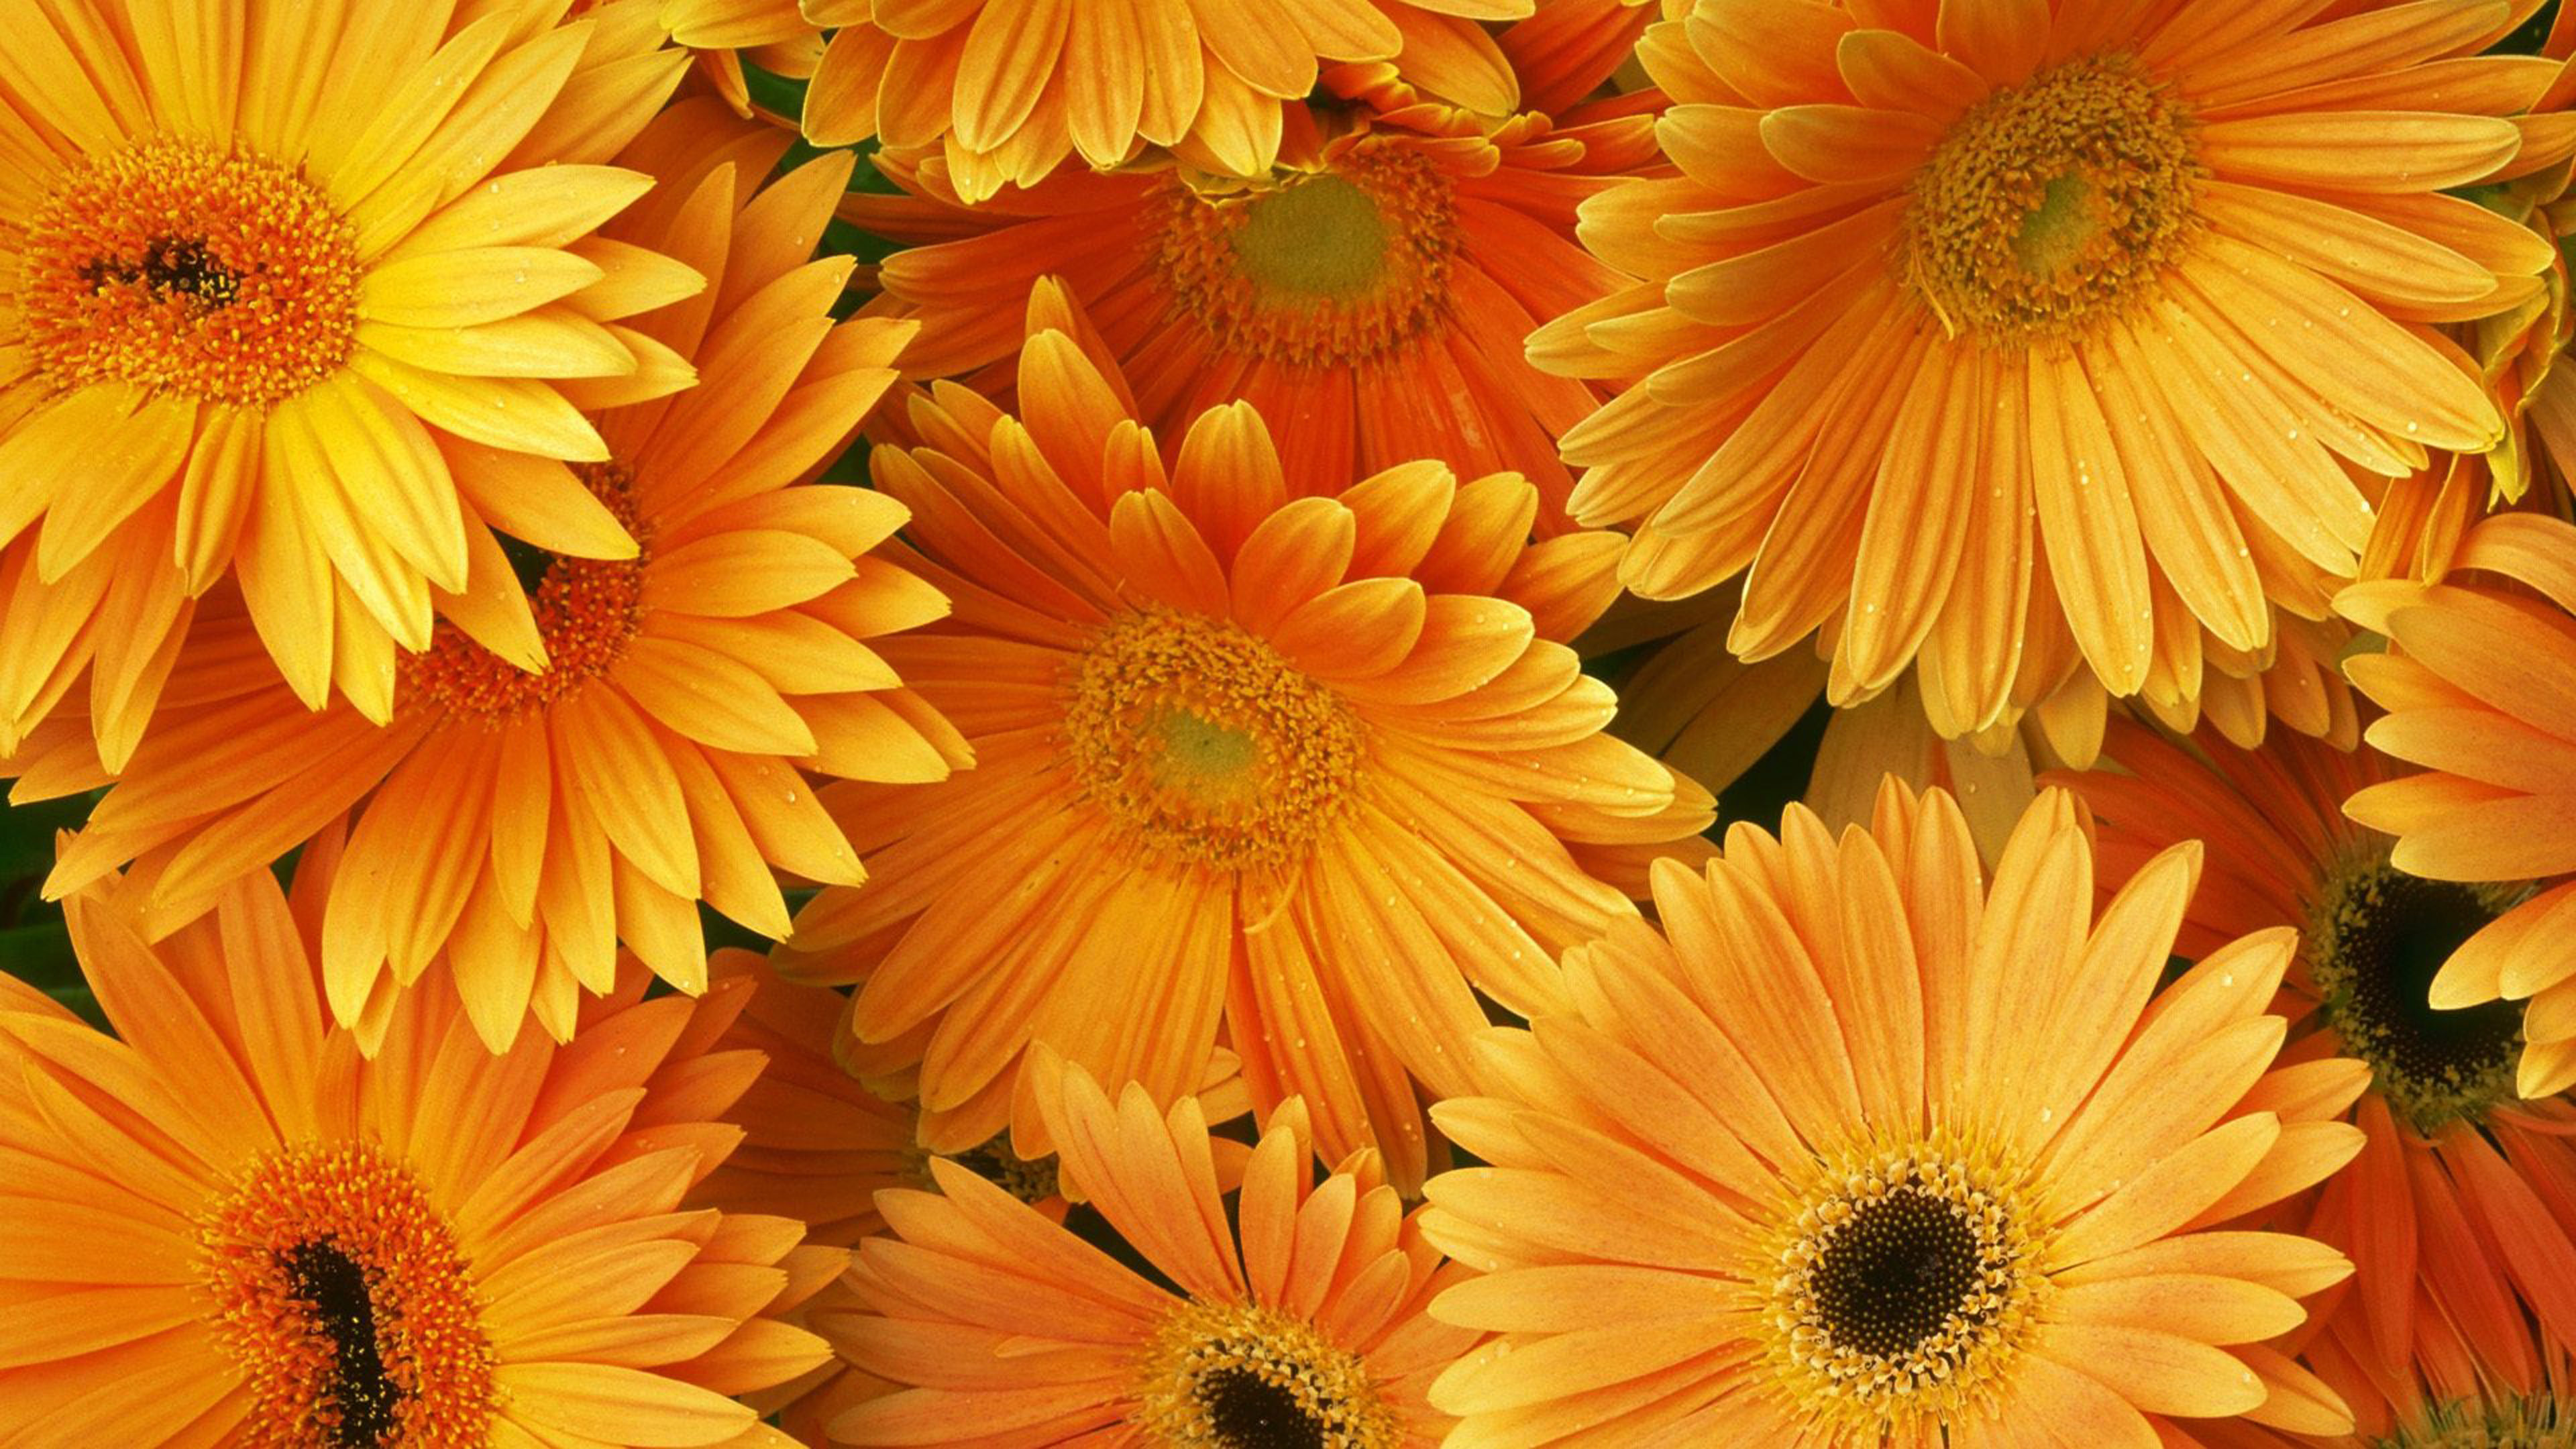 If you've checked out some of our suggested wallpaper resources, you've probably amassed quite a collection of swanky desktop wallpaper. Orange Flowers Hd Desktop Backgrounds Free Download